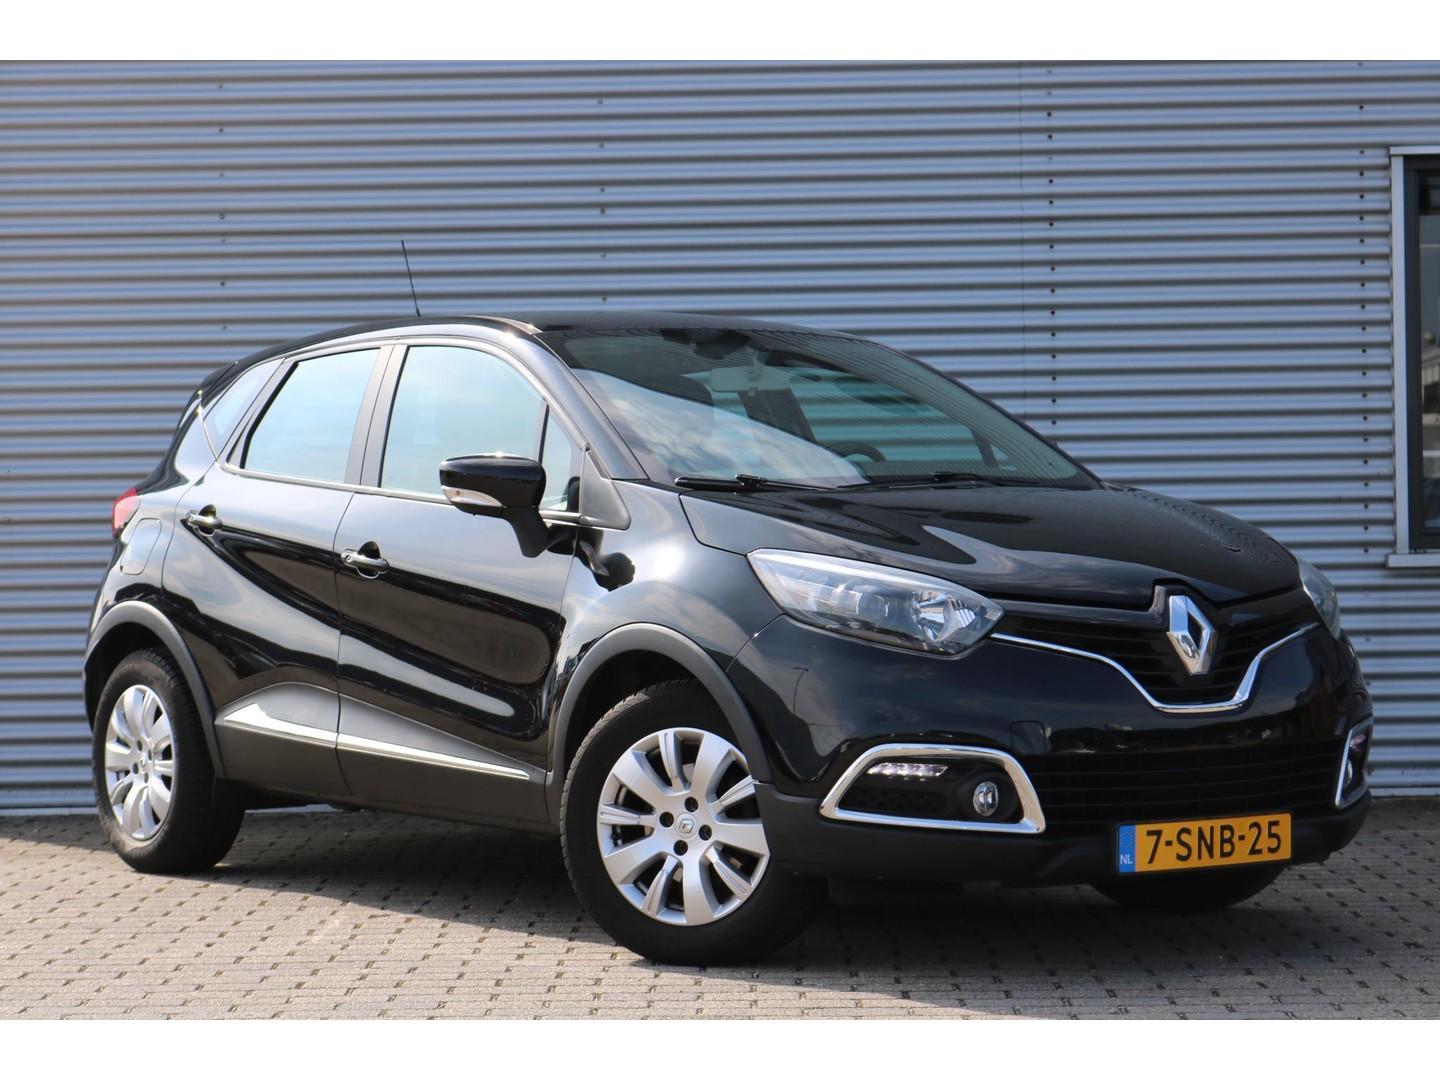 Renault Captur 1.5 dci expression airco, cruise, trekhaak